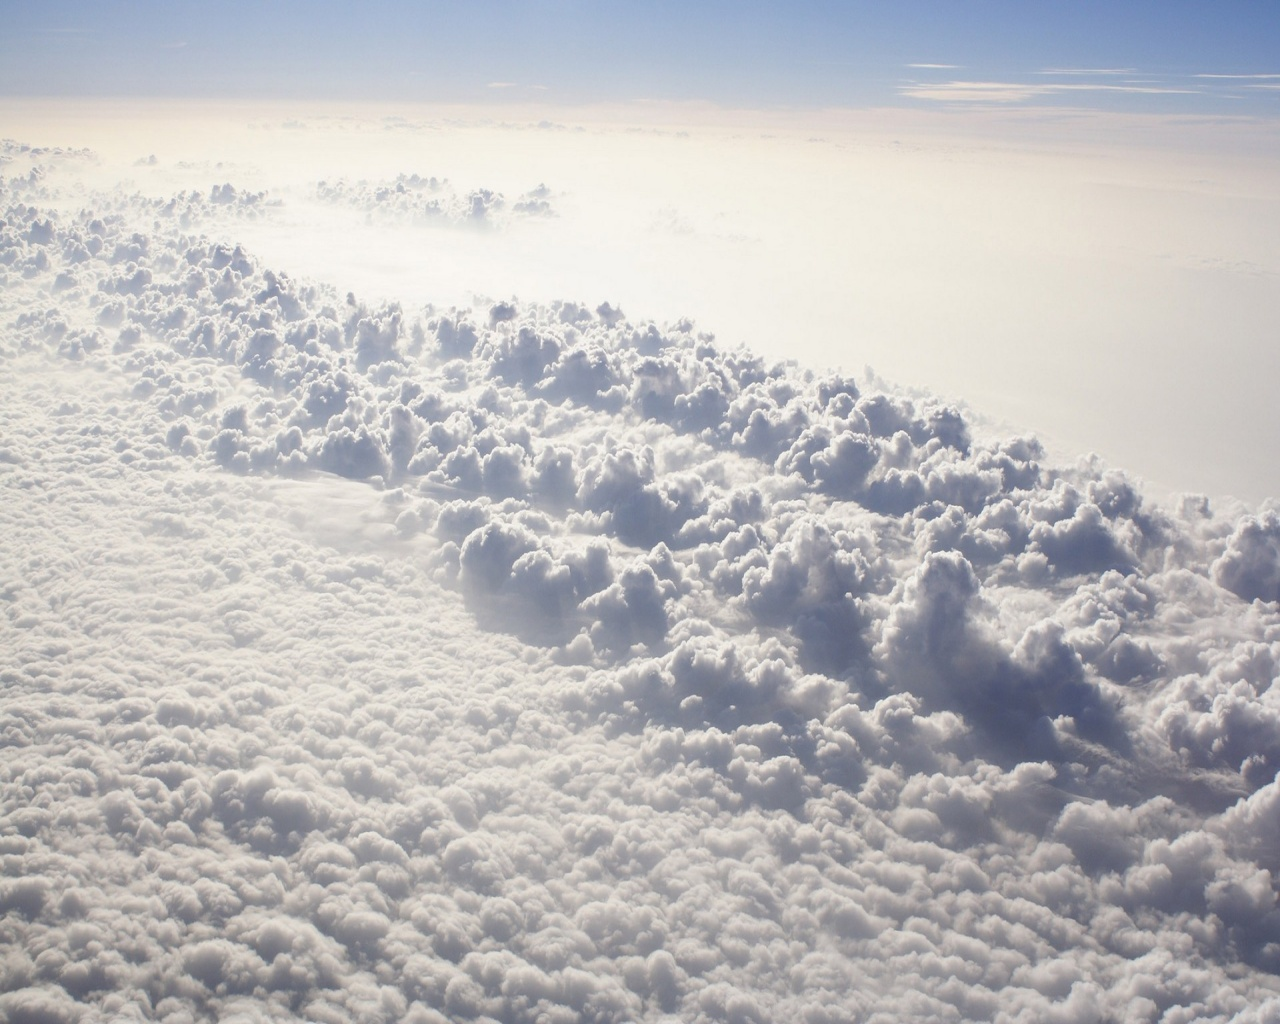 1280x1024 Above the clouds desktop PC and Mac wallpaper